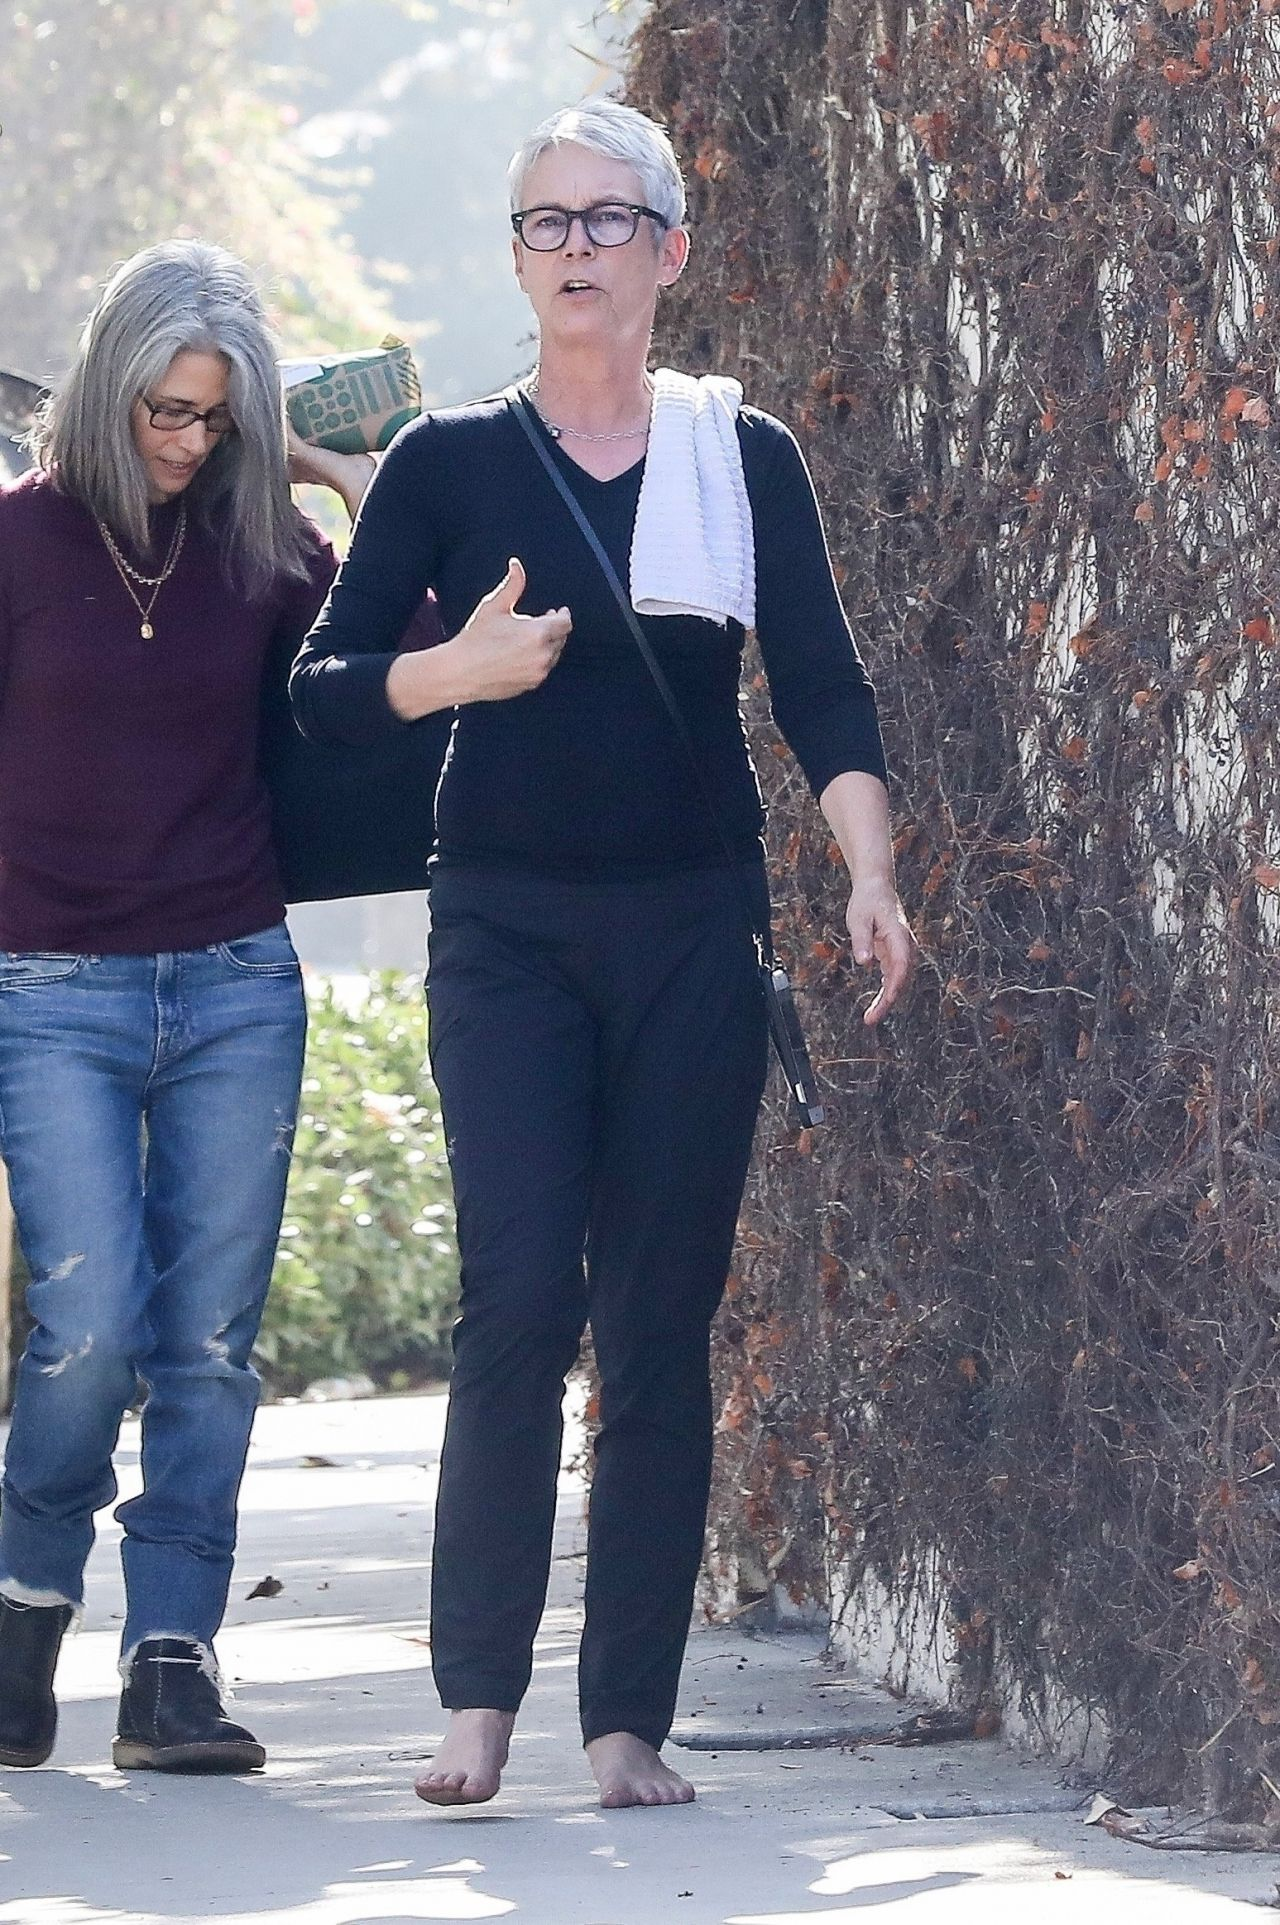 Jamie Lee Curtis Goes For A Walk With A Friend In Santa Monica